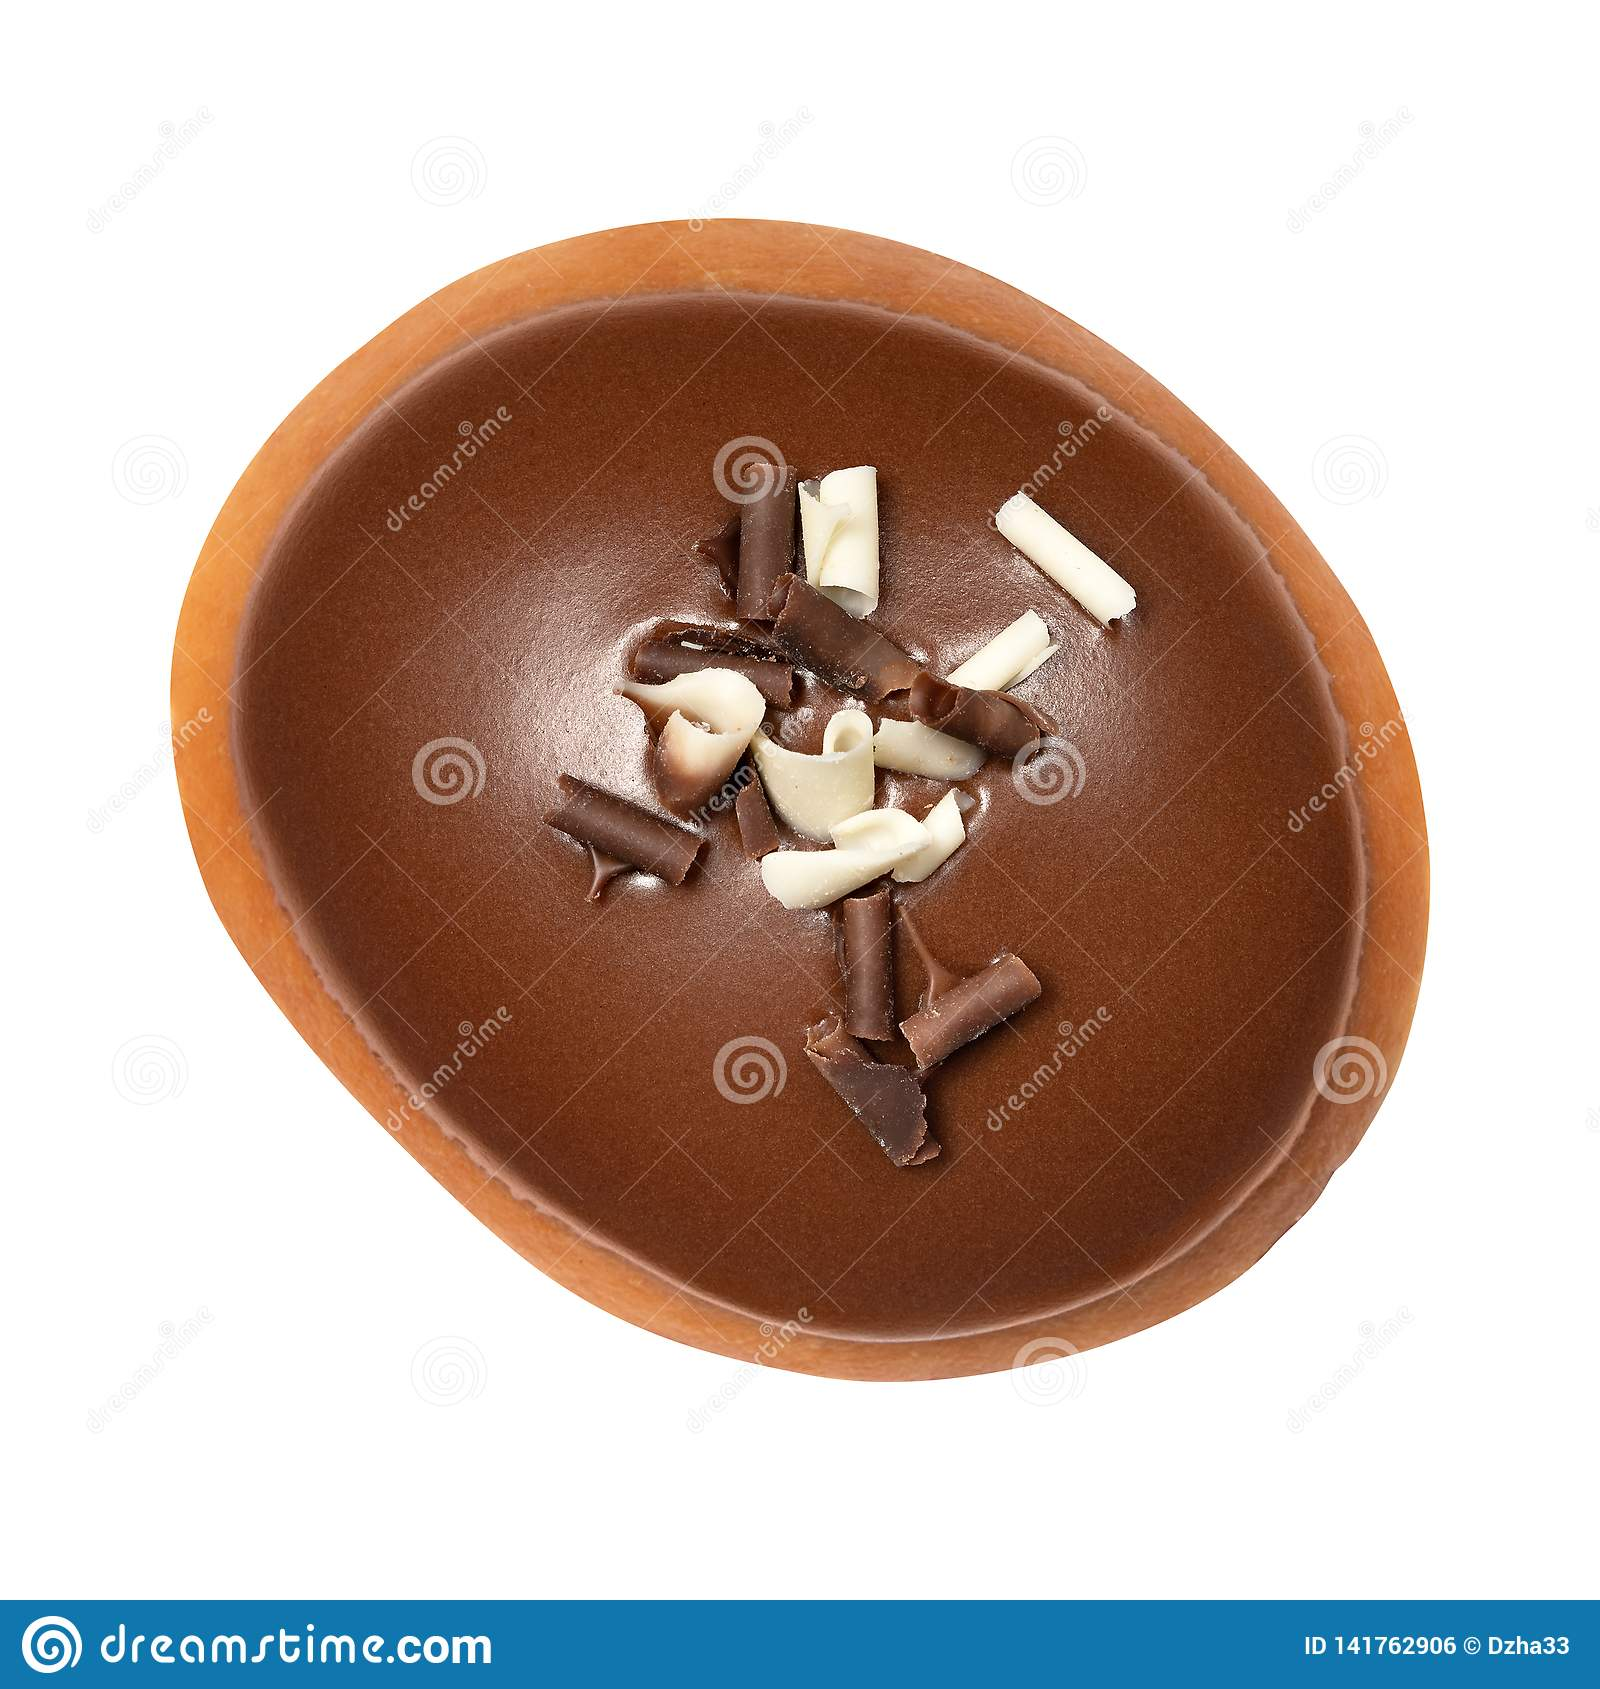 Berlin Donut with chocolate glaze isolated on white background. One chocolate doughnut. Front View. Top view